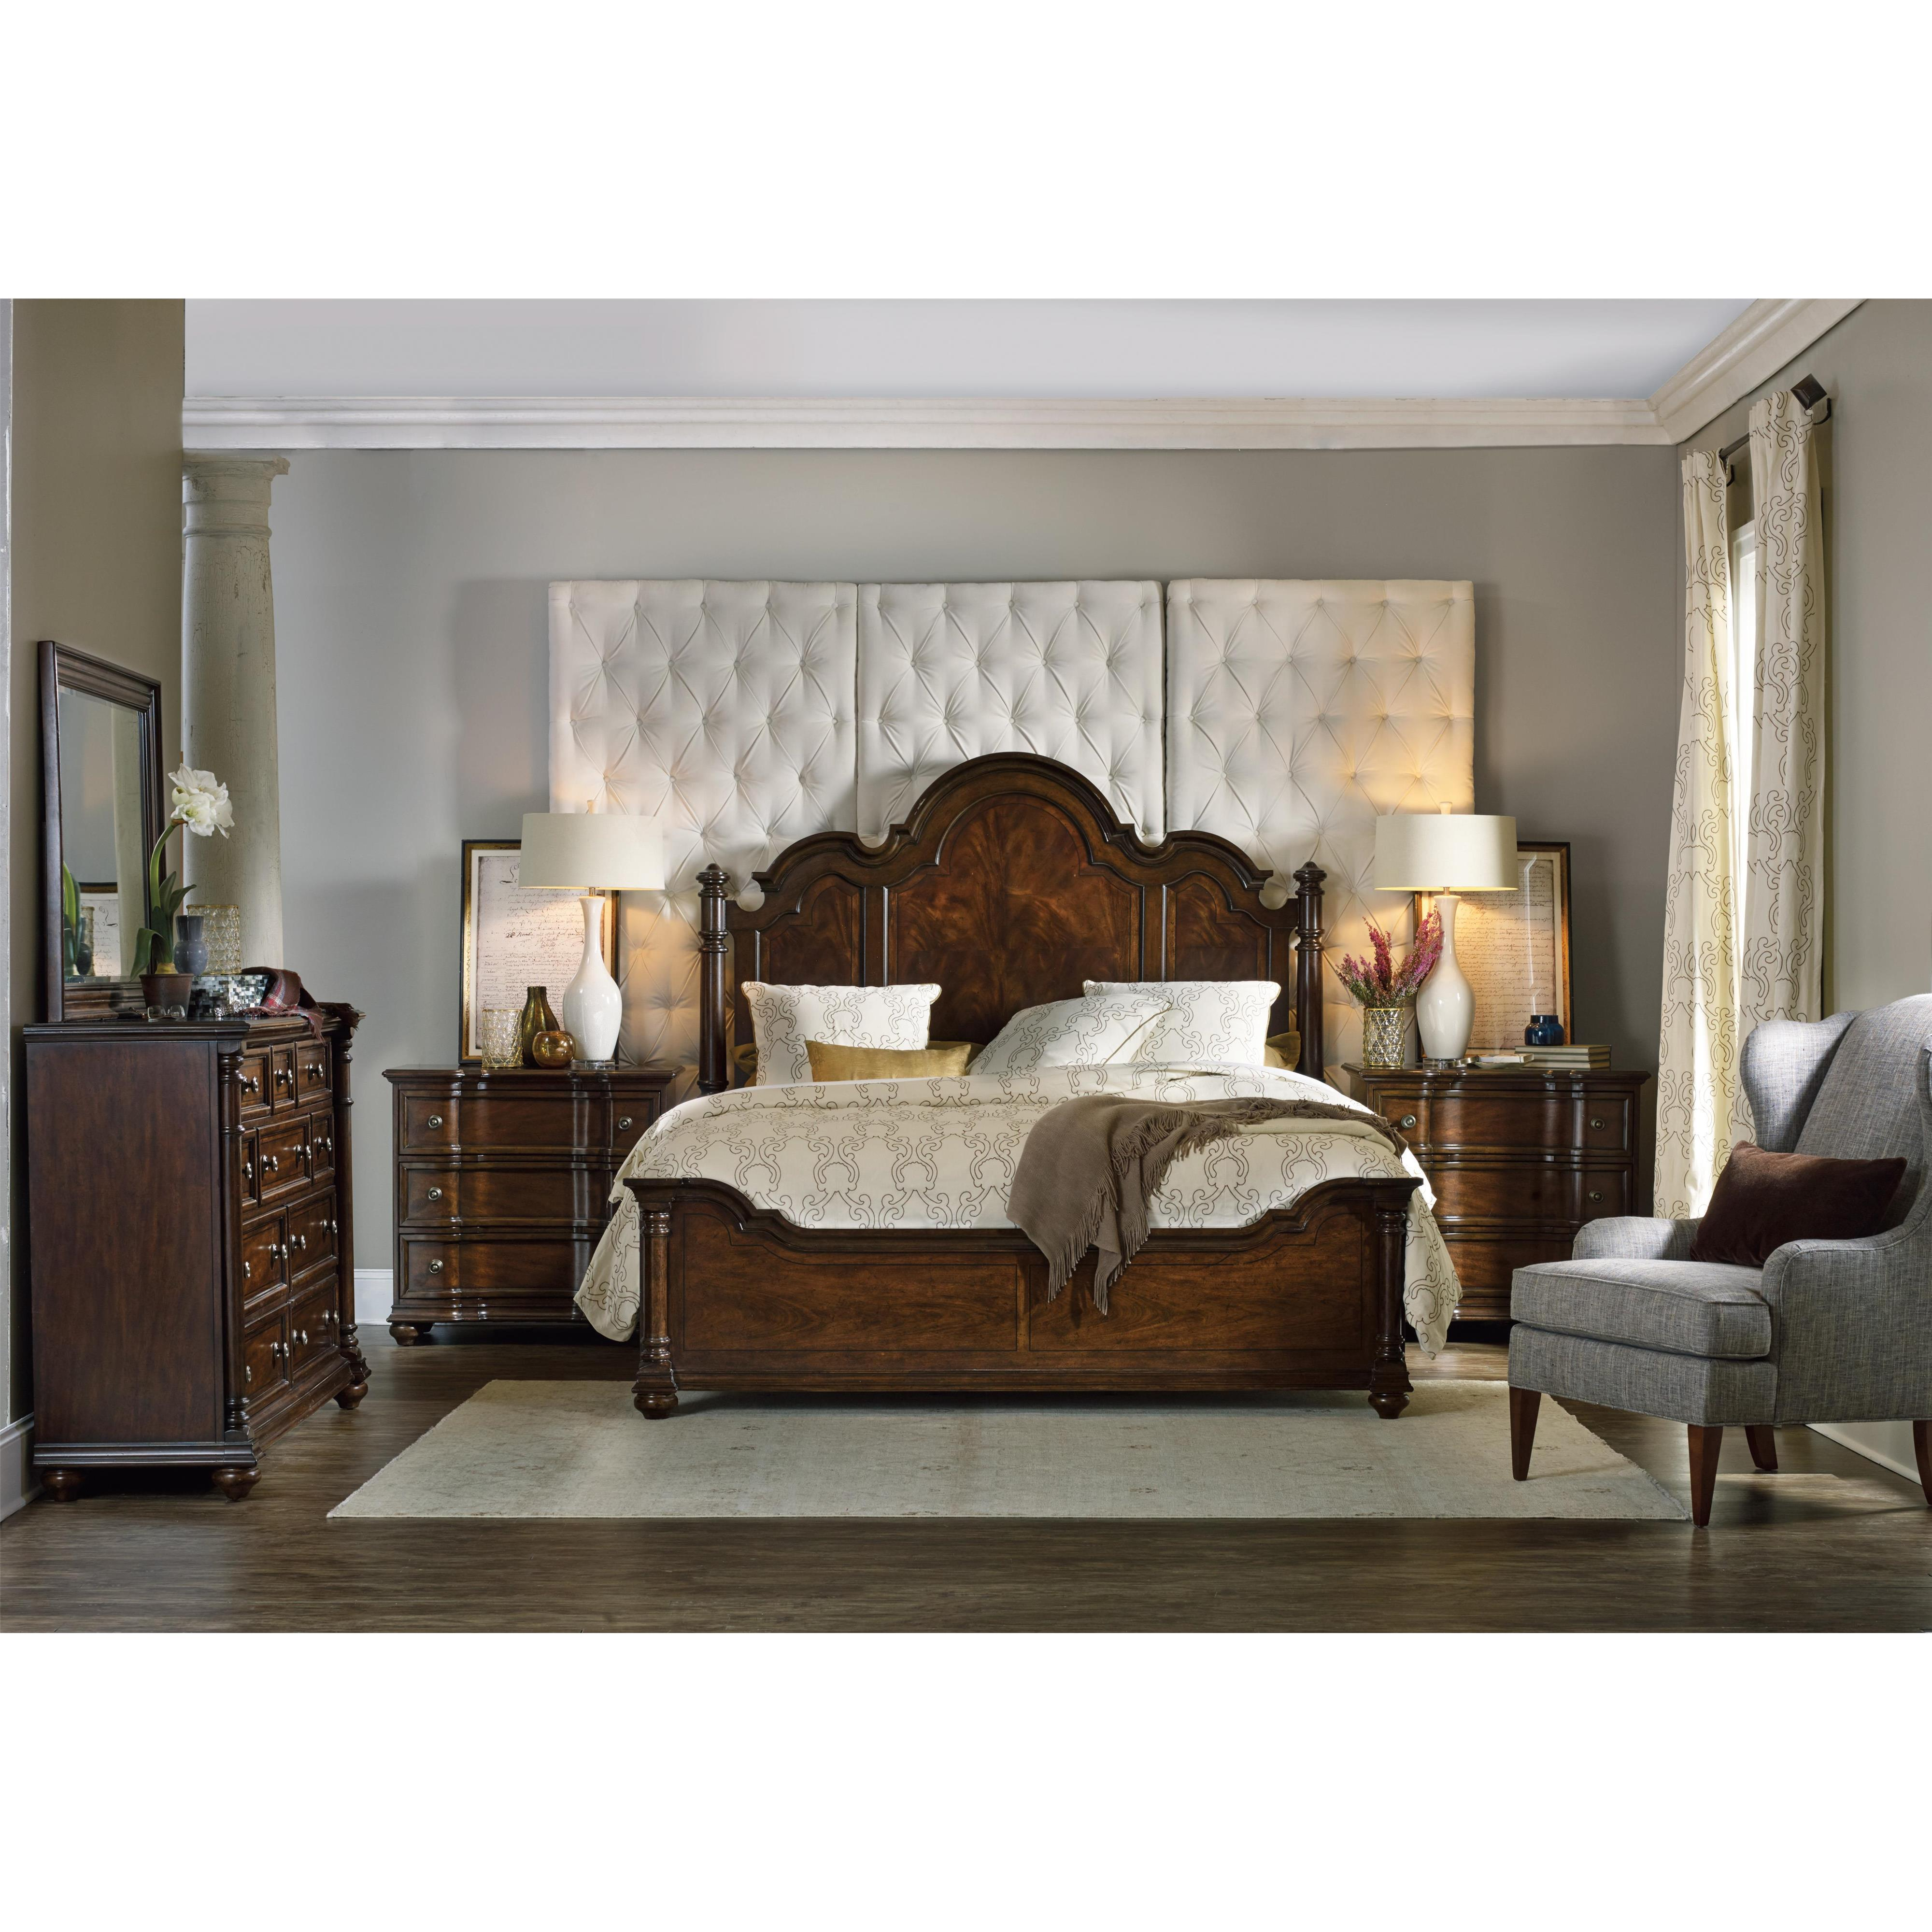 Hooker Furniture Leesburg King Bedroom Group - Item Number: 5381 K Bedroom Group 1